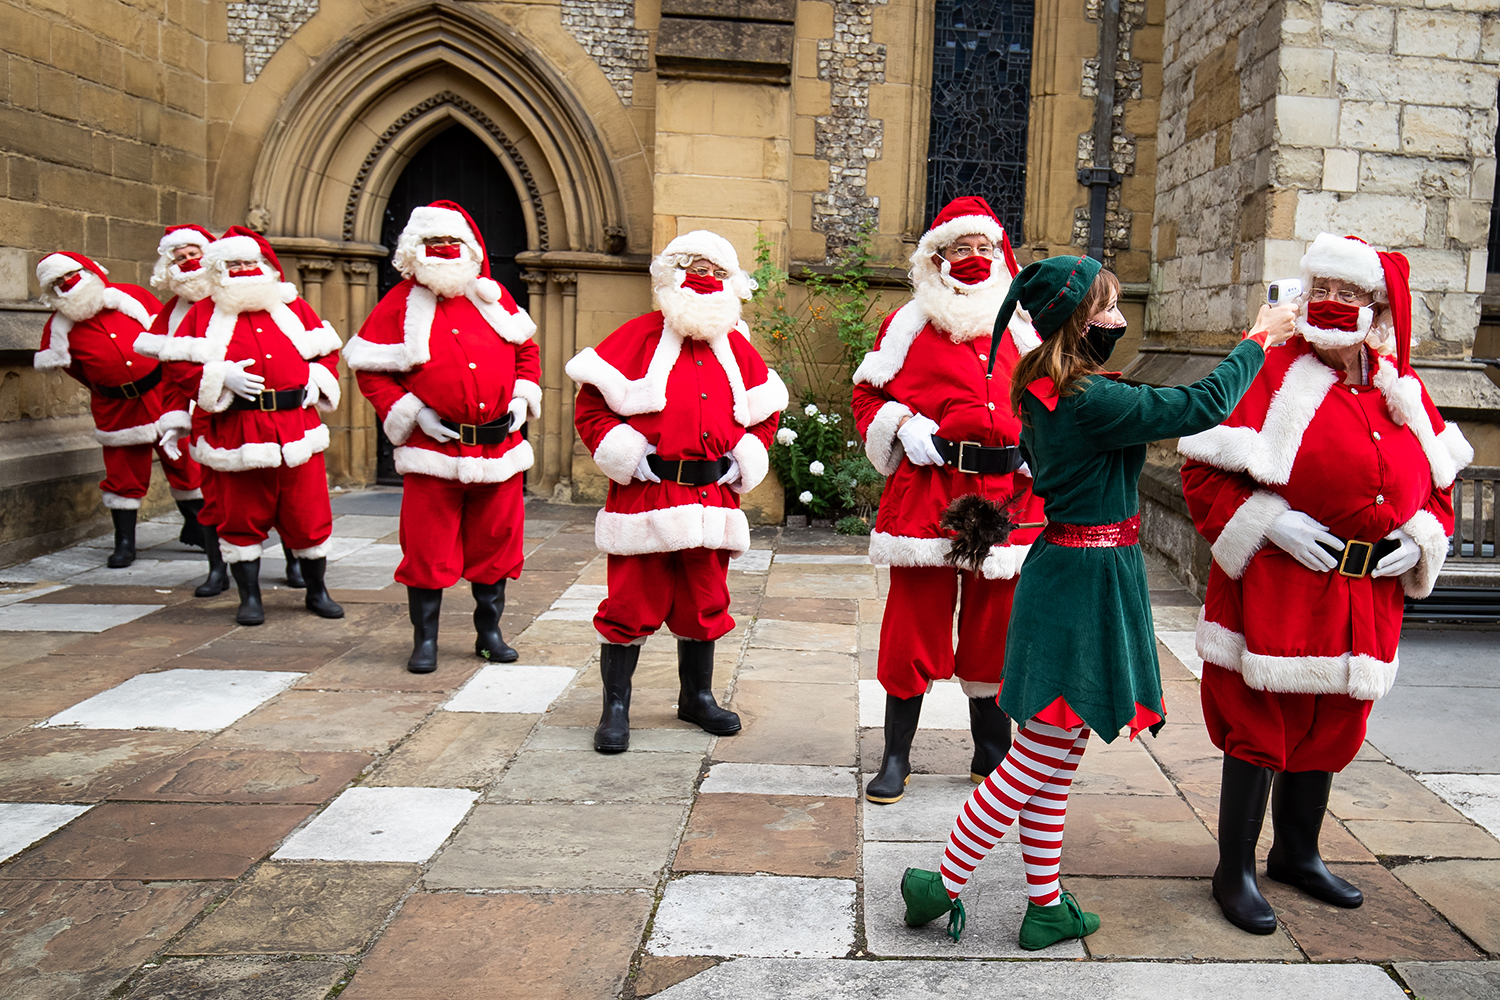 Santas at the Ministry of Fun's Summer School in Southwark Cathedral, London, have their temperature taken Aug. 24. The school aims to create COVID-safe Christmas grottos by teaching Father Christmases how to appear safely in person while maintaining the Christmas magic. Aaron Chown/PA Images via Getty Images